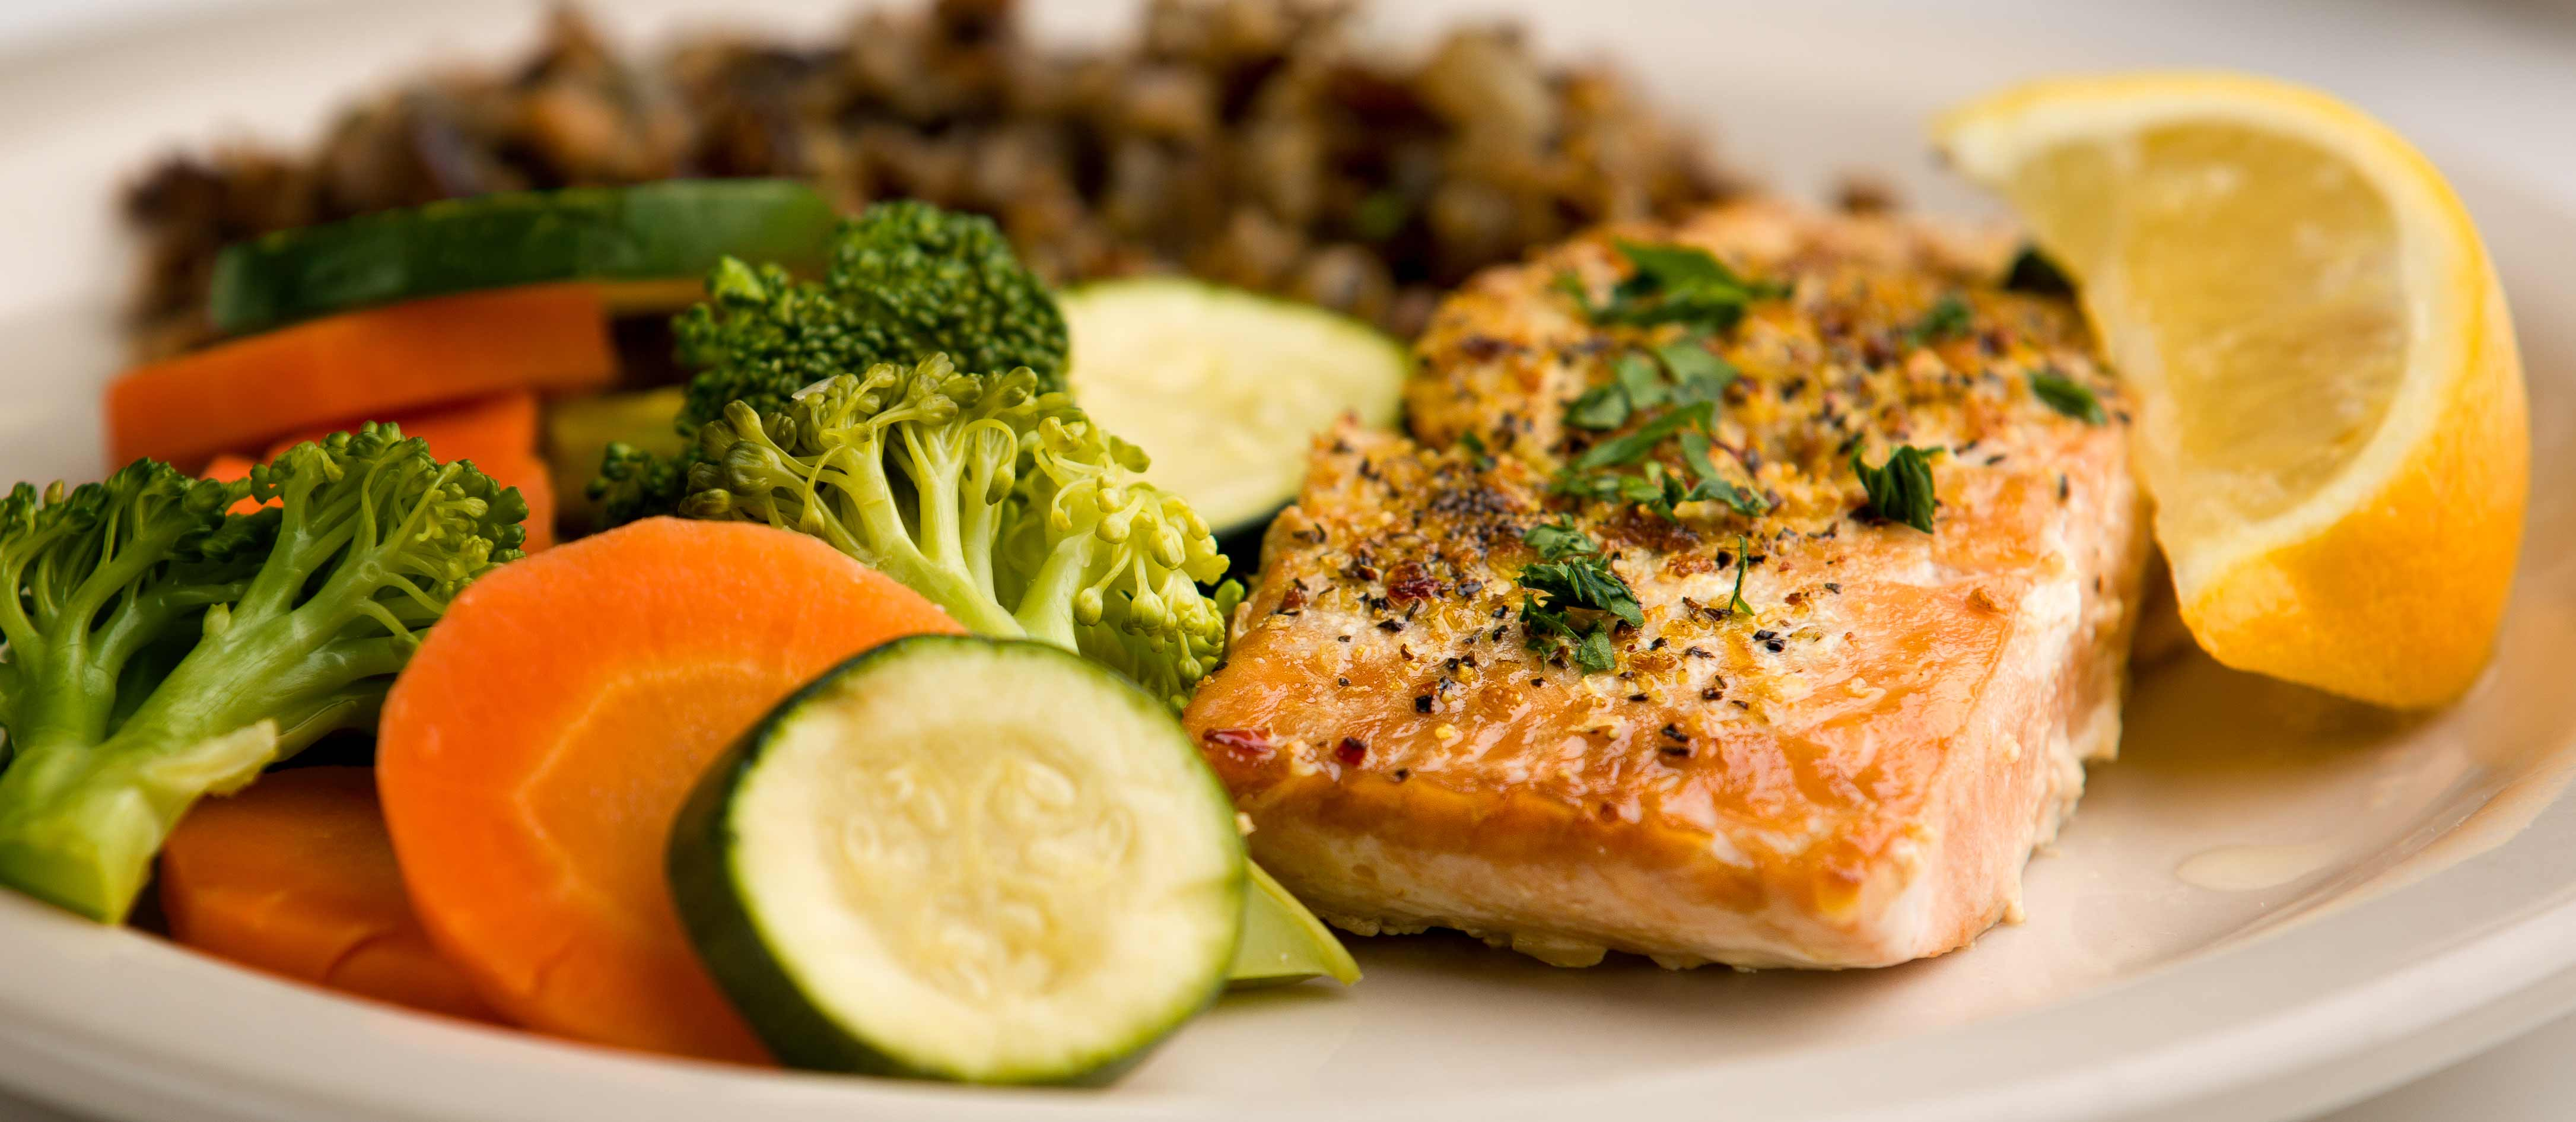 Meals on Wheels salmon meal